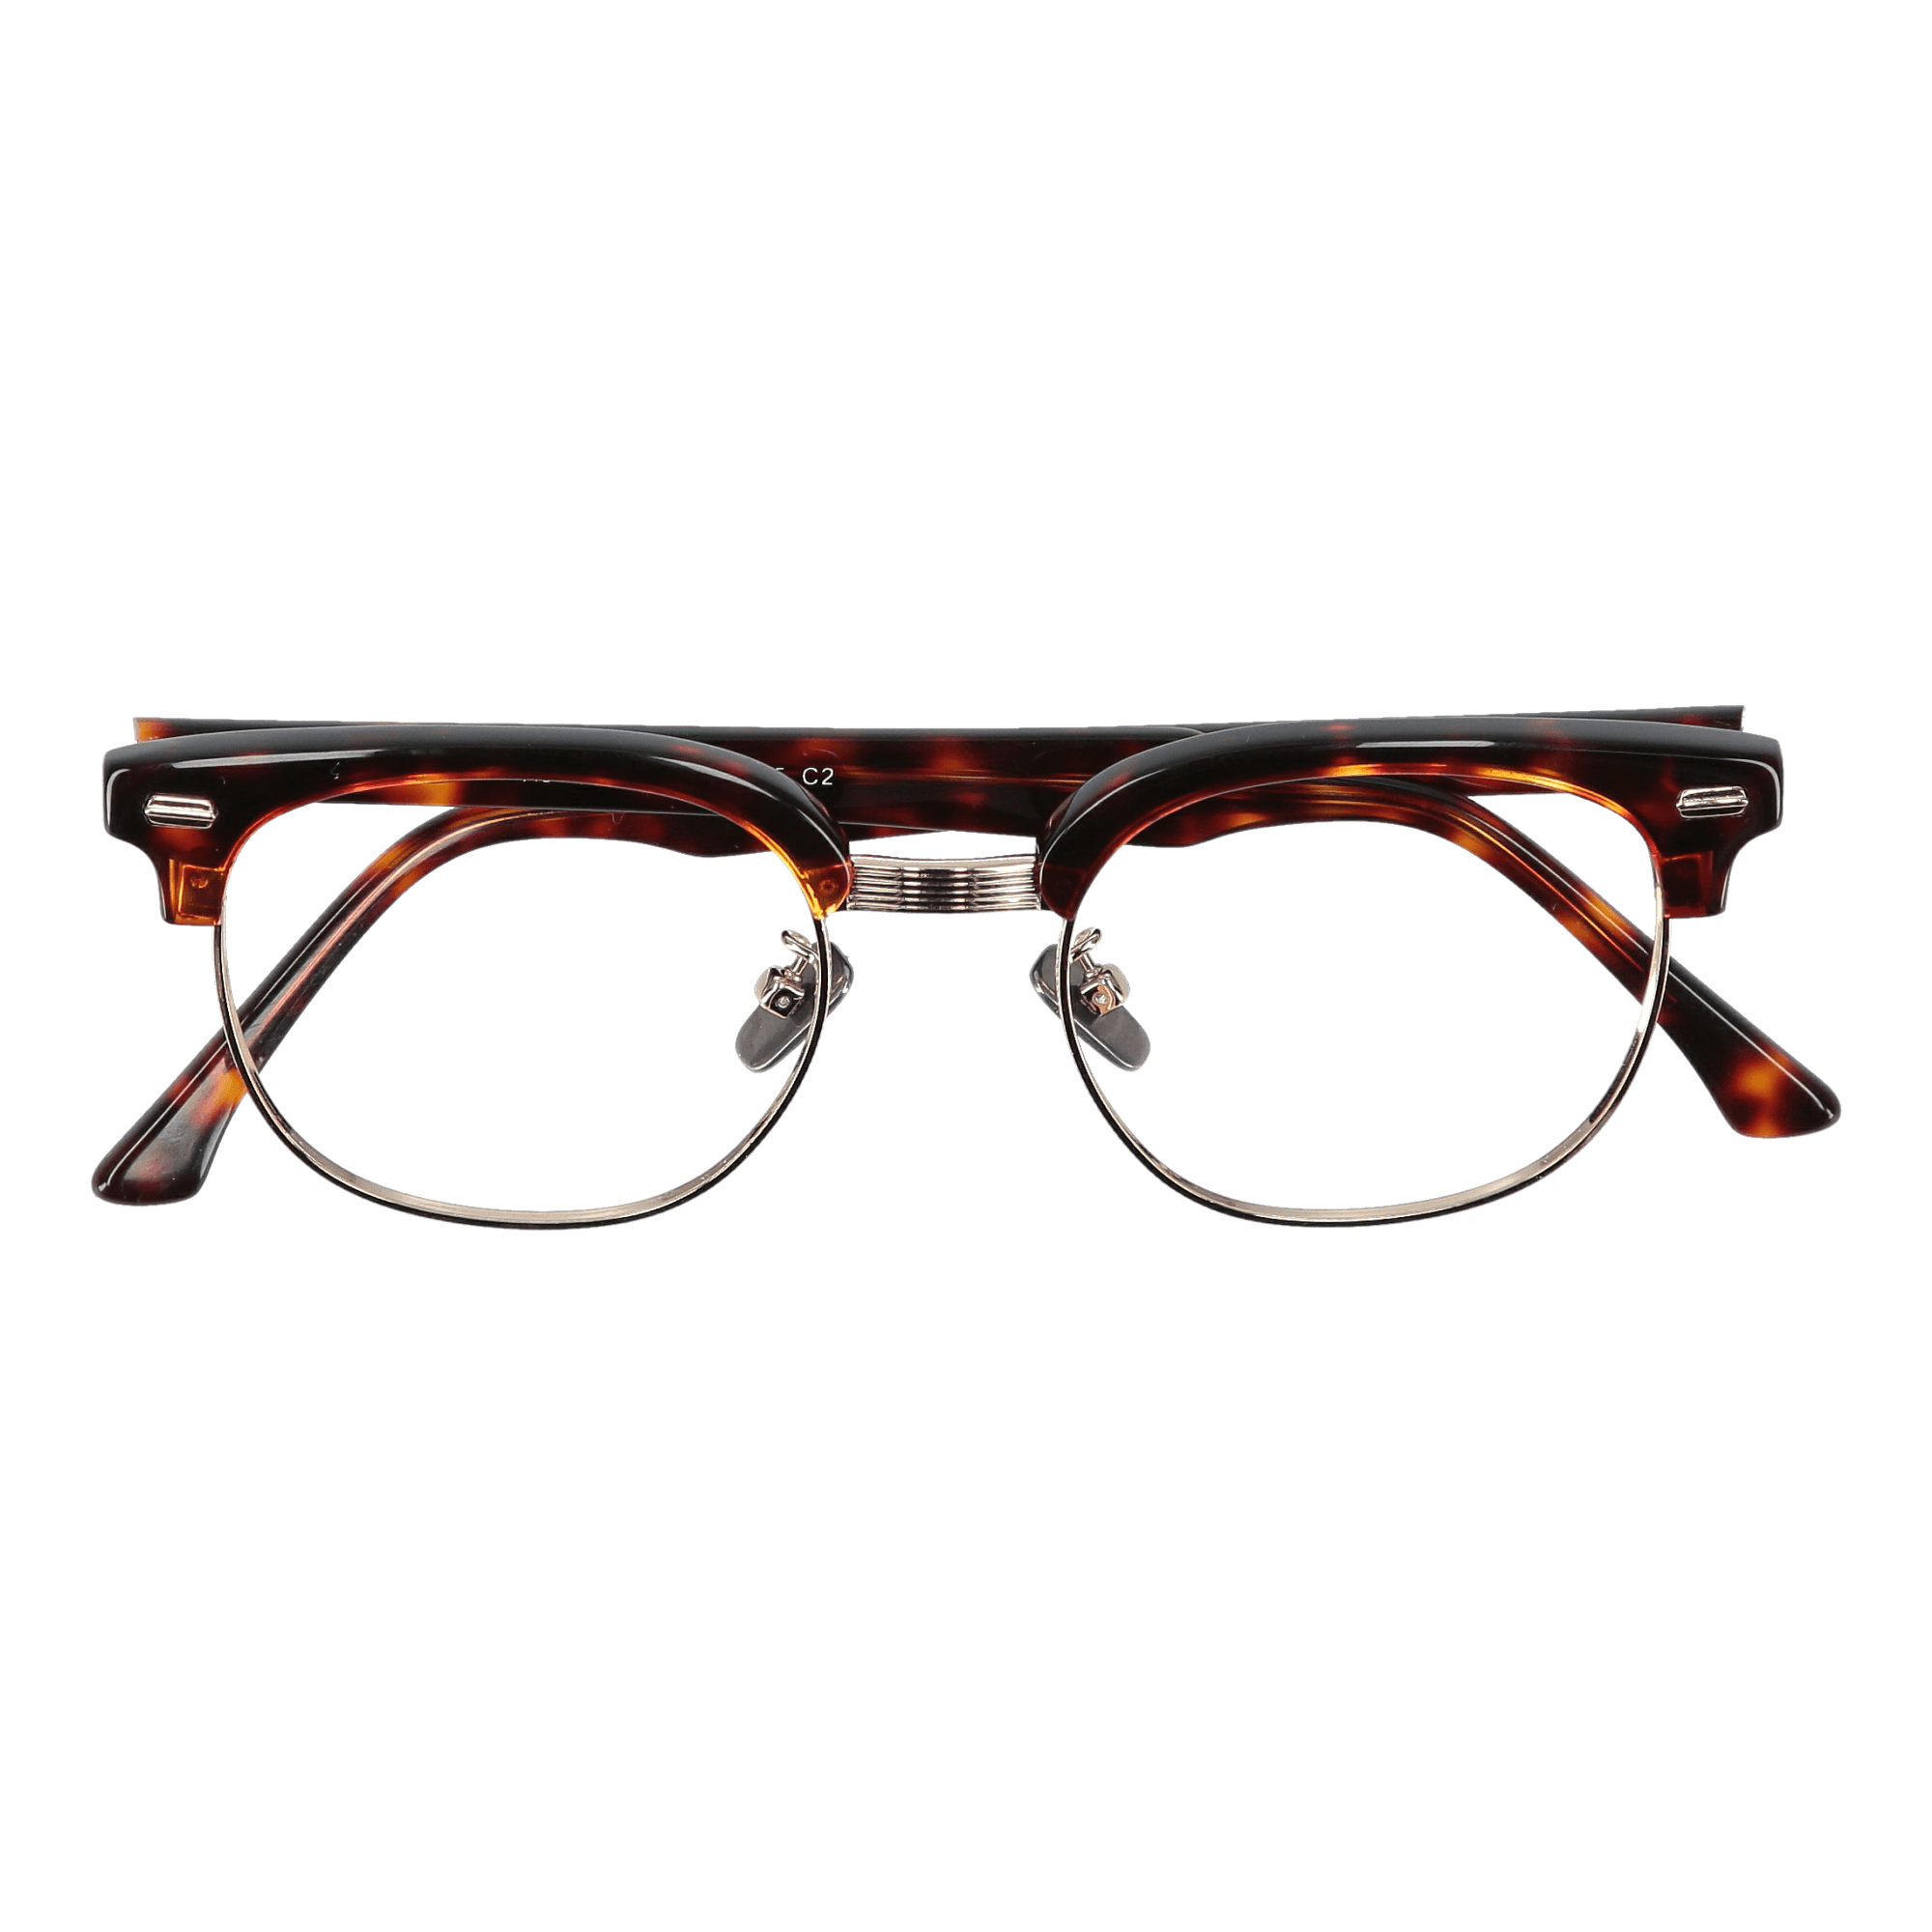 MACKLONE OPTICAL SAINT REETS